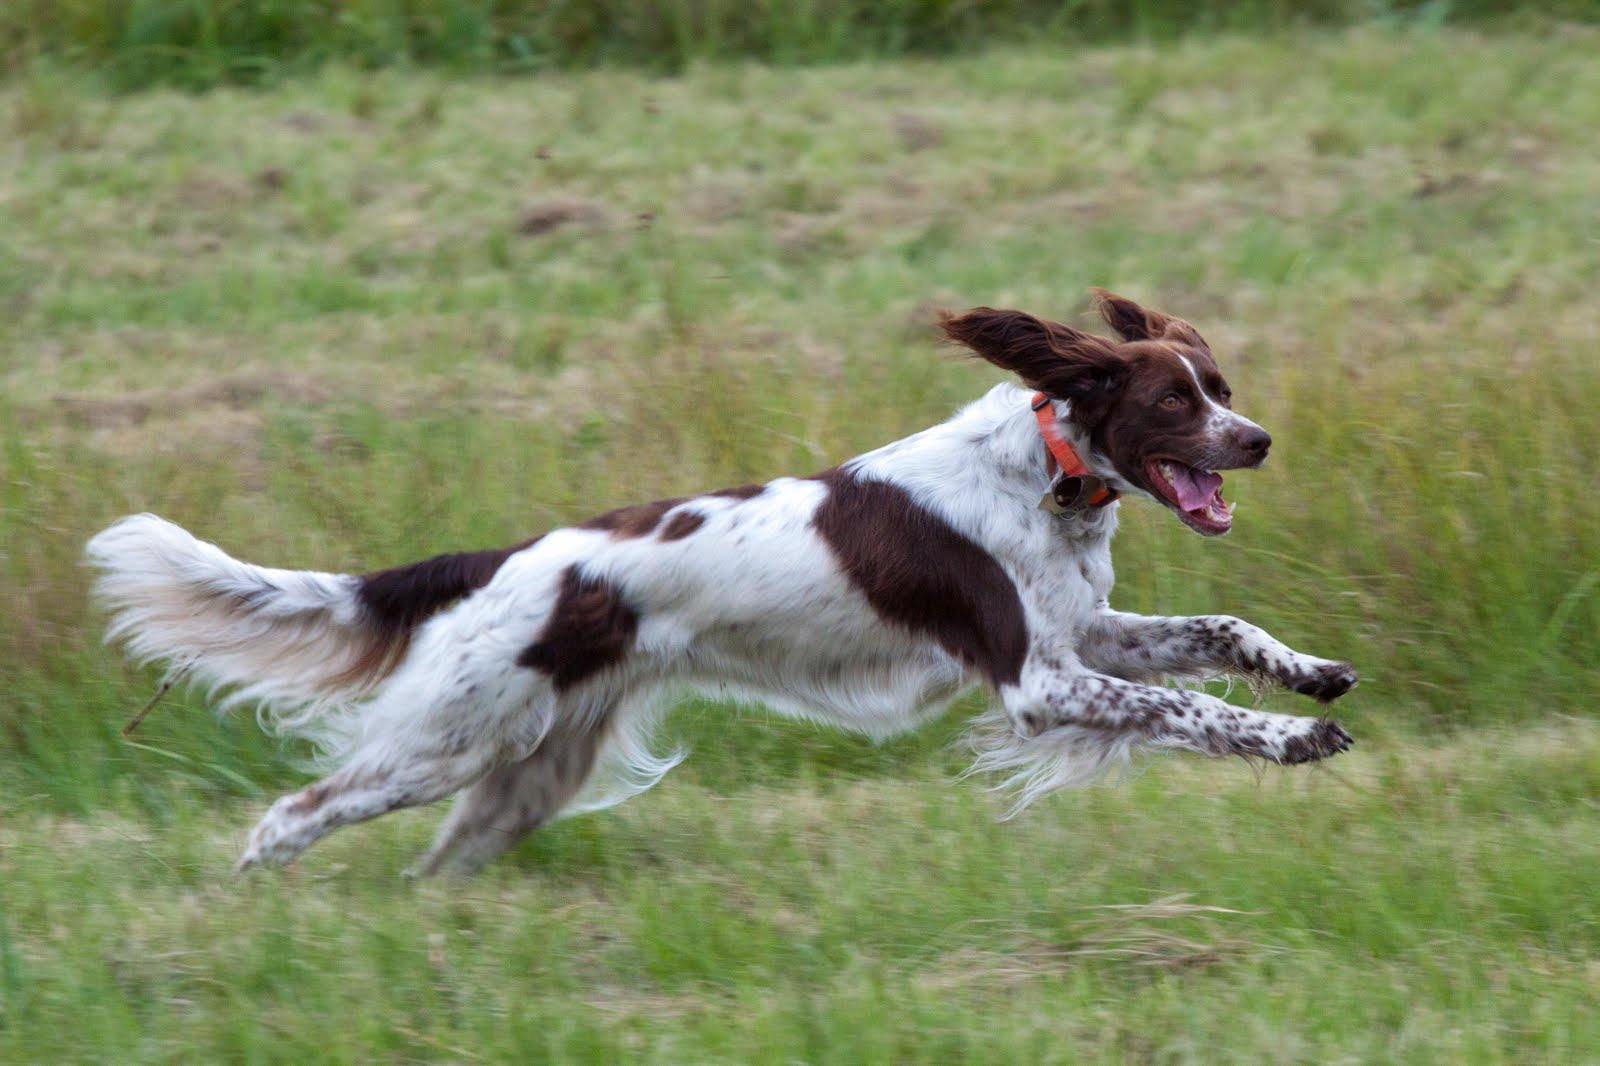 running-french-spaniel-dog-photo